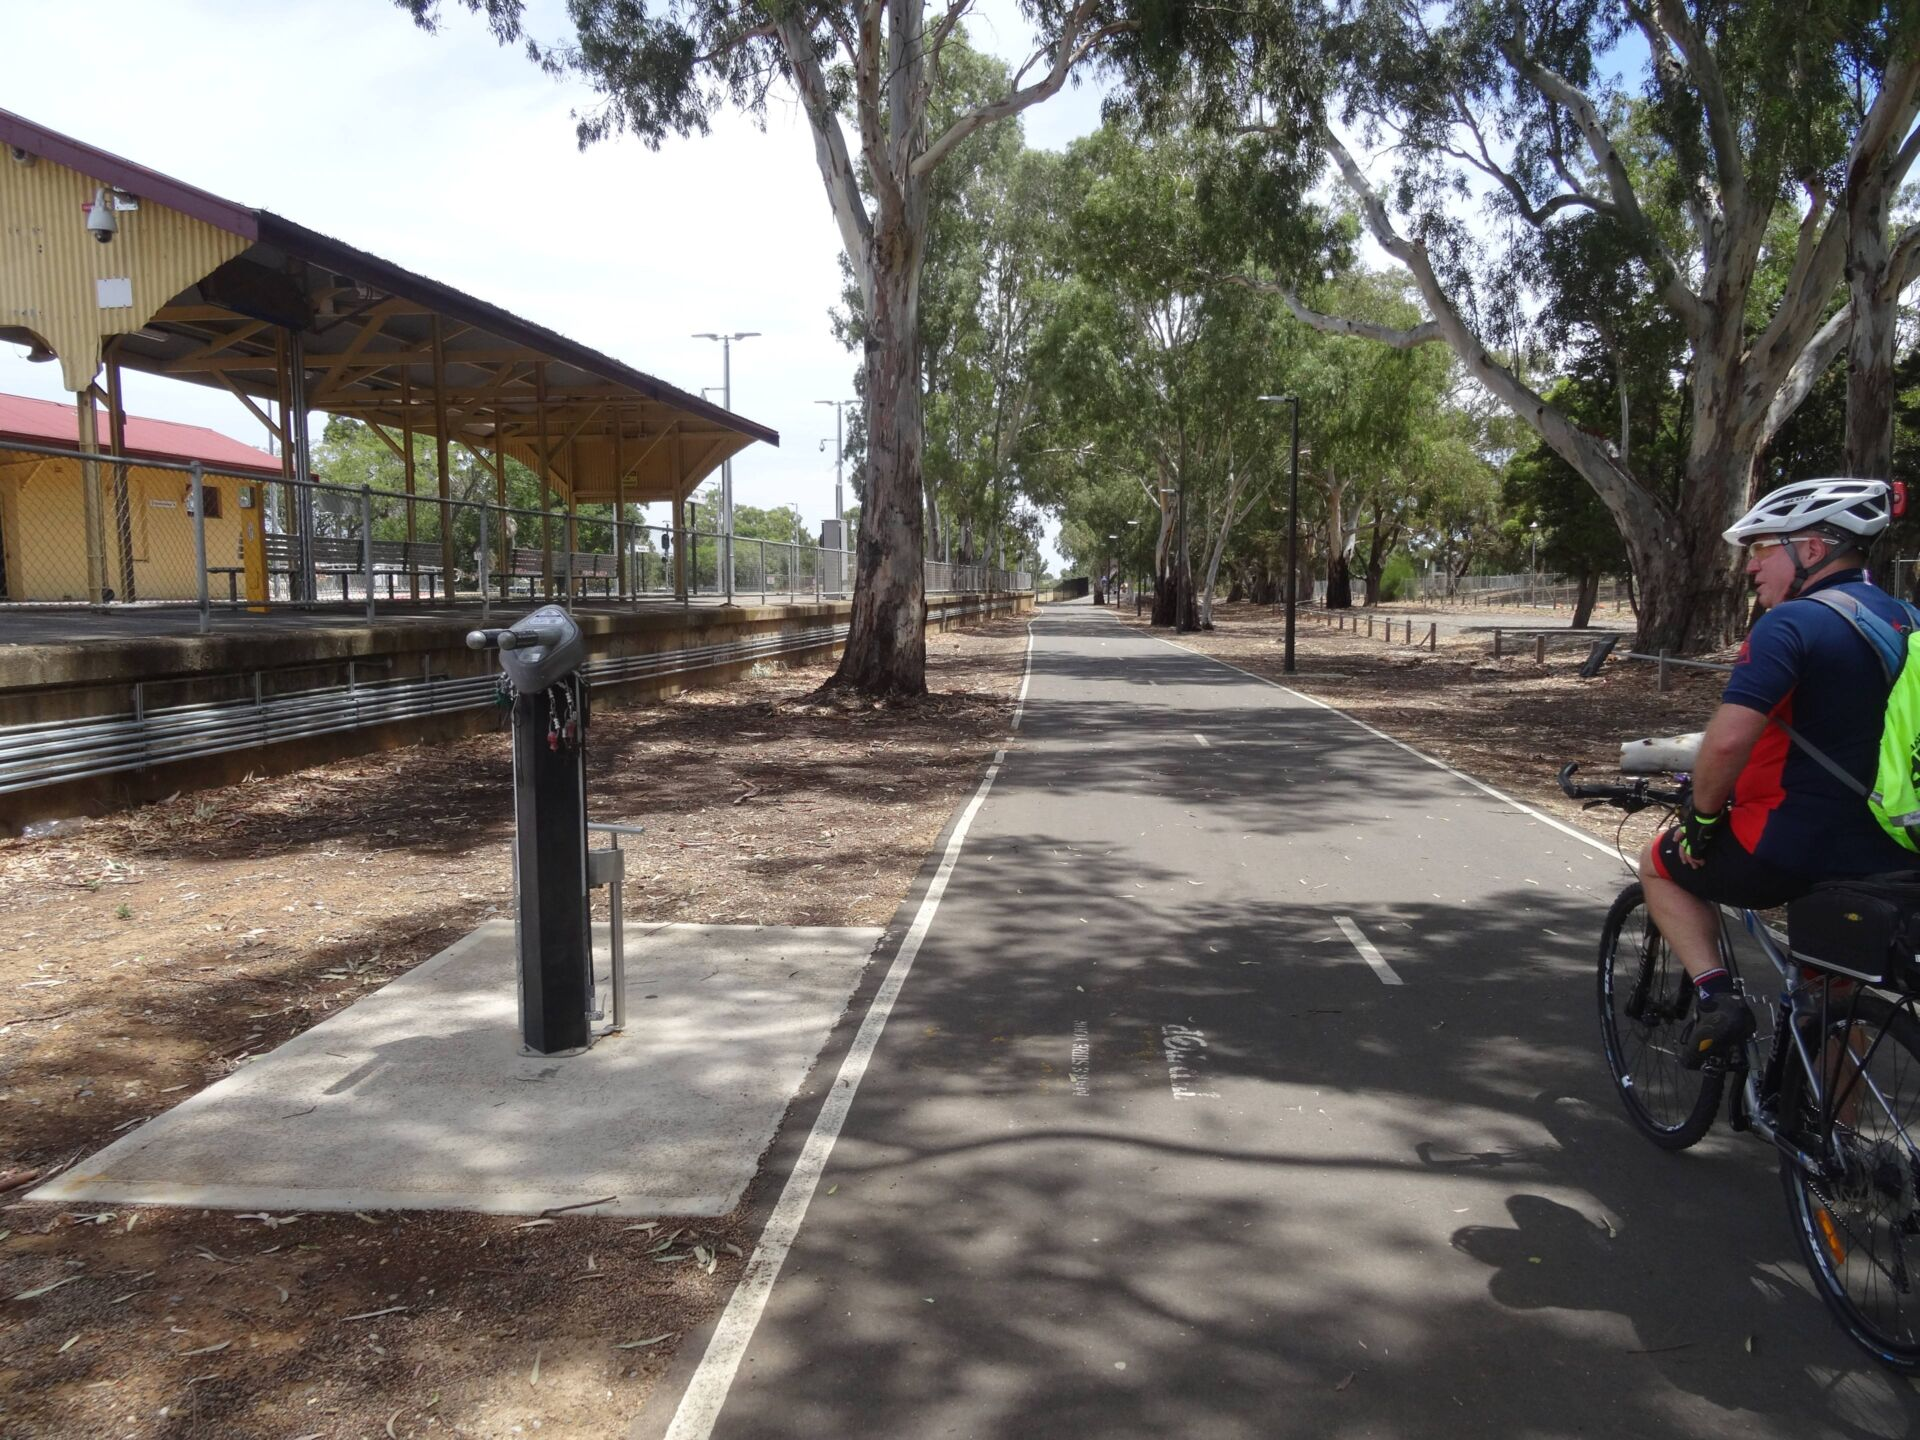 bike repair station adjacent to the Woodville Station